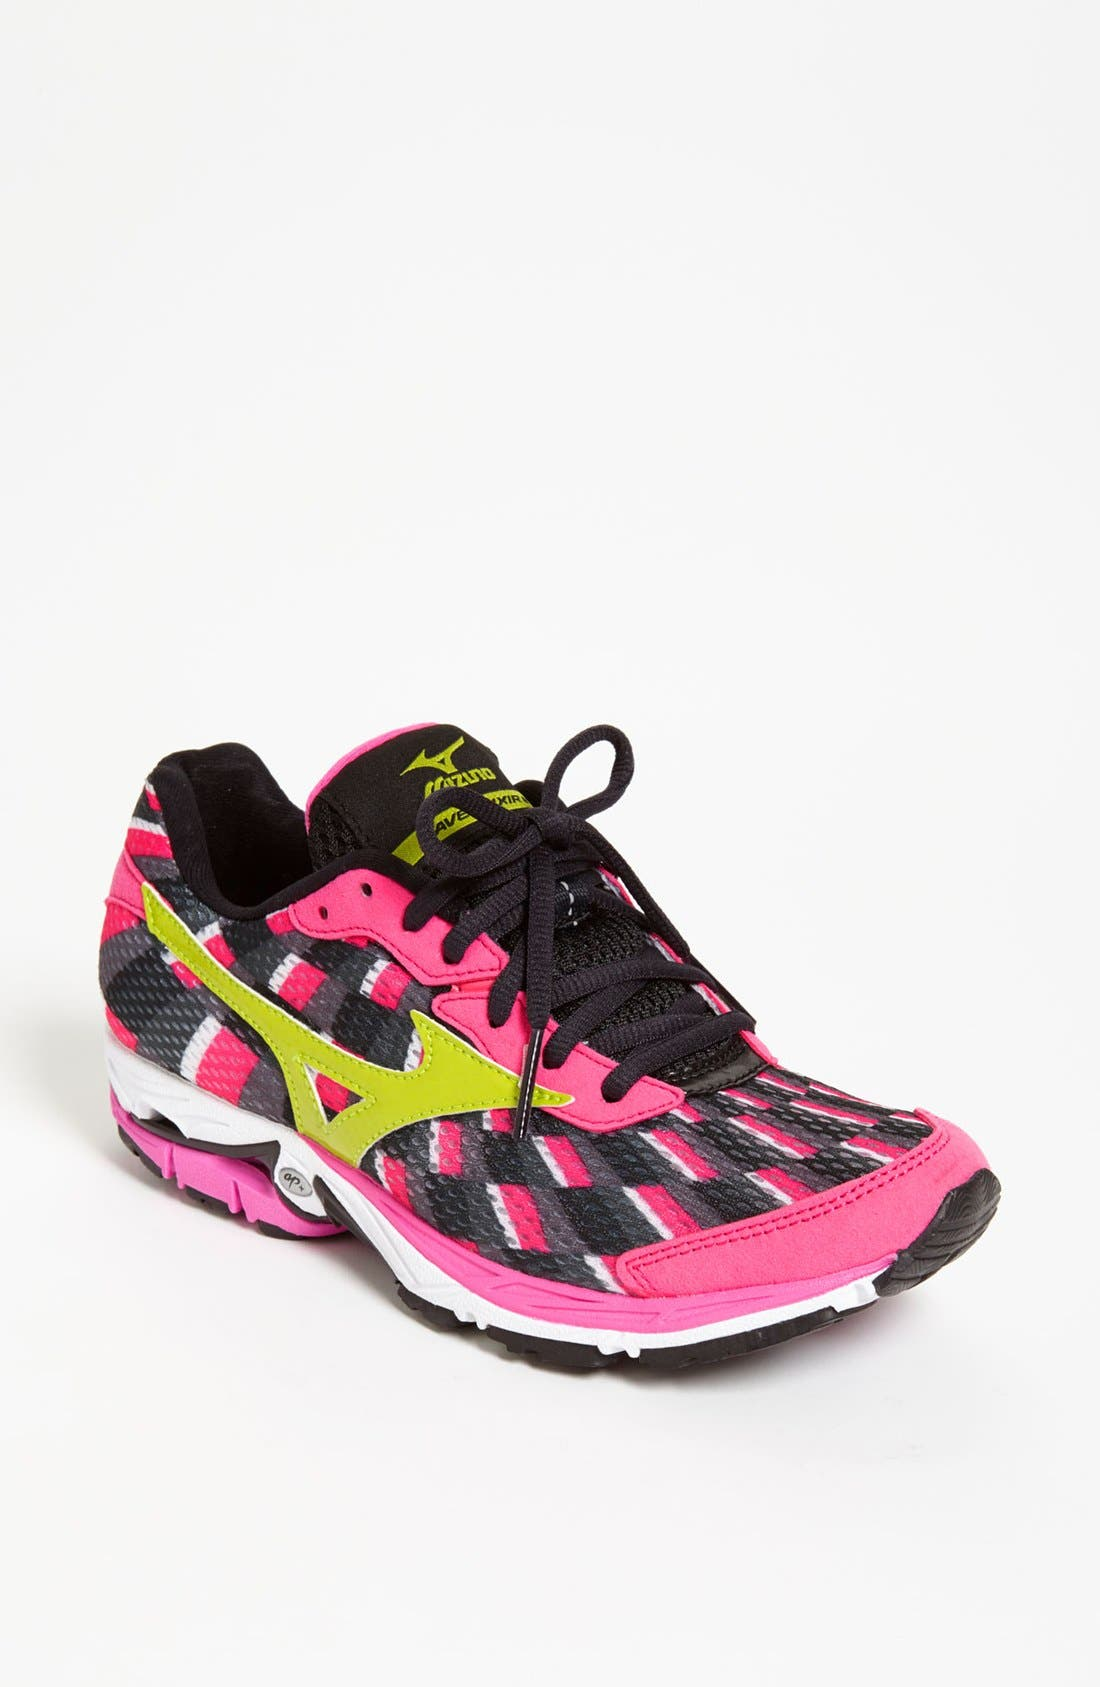 Alternate Image 1 Selected - Mizuno 'Wave Elixir 8' Running Shoe (Women)